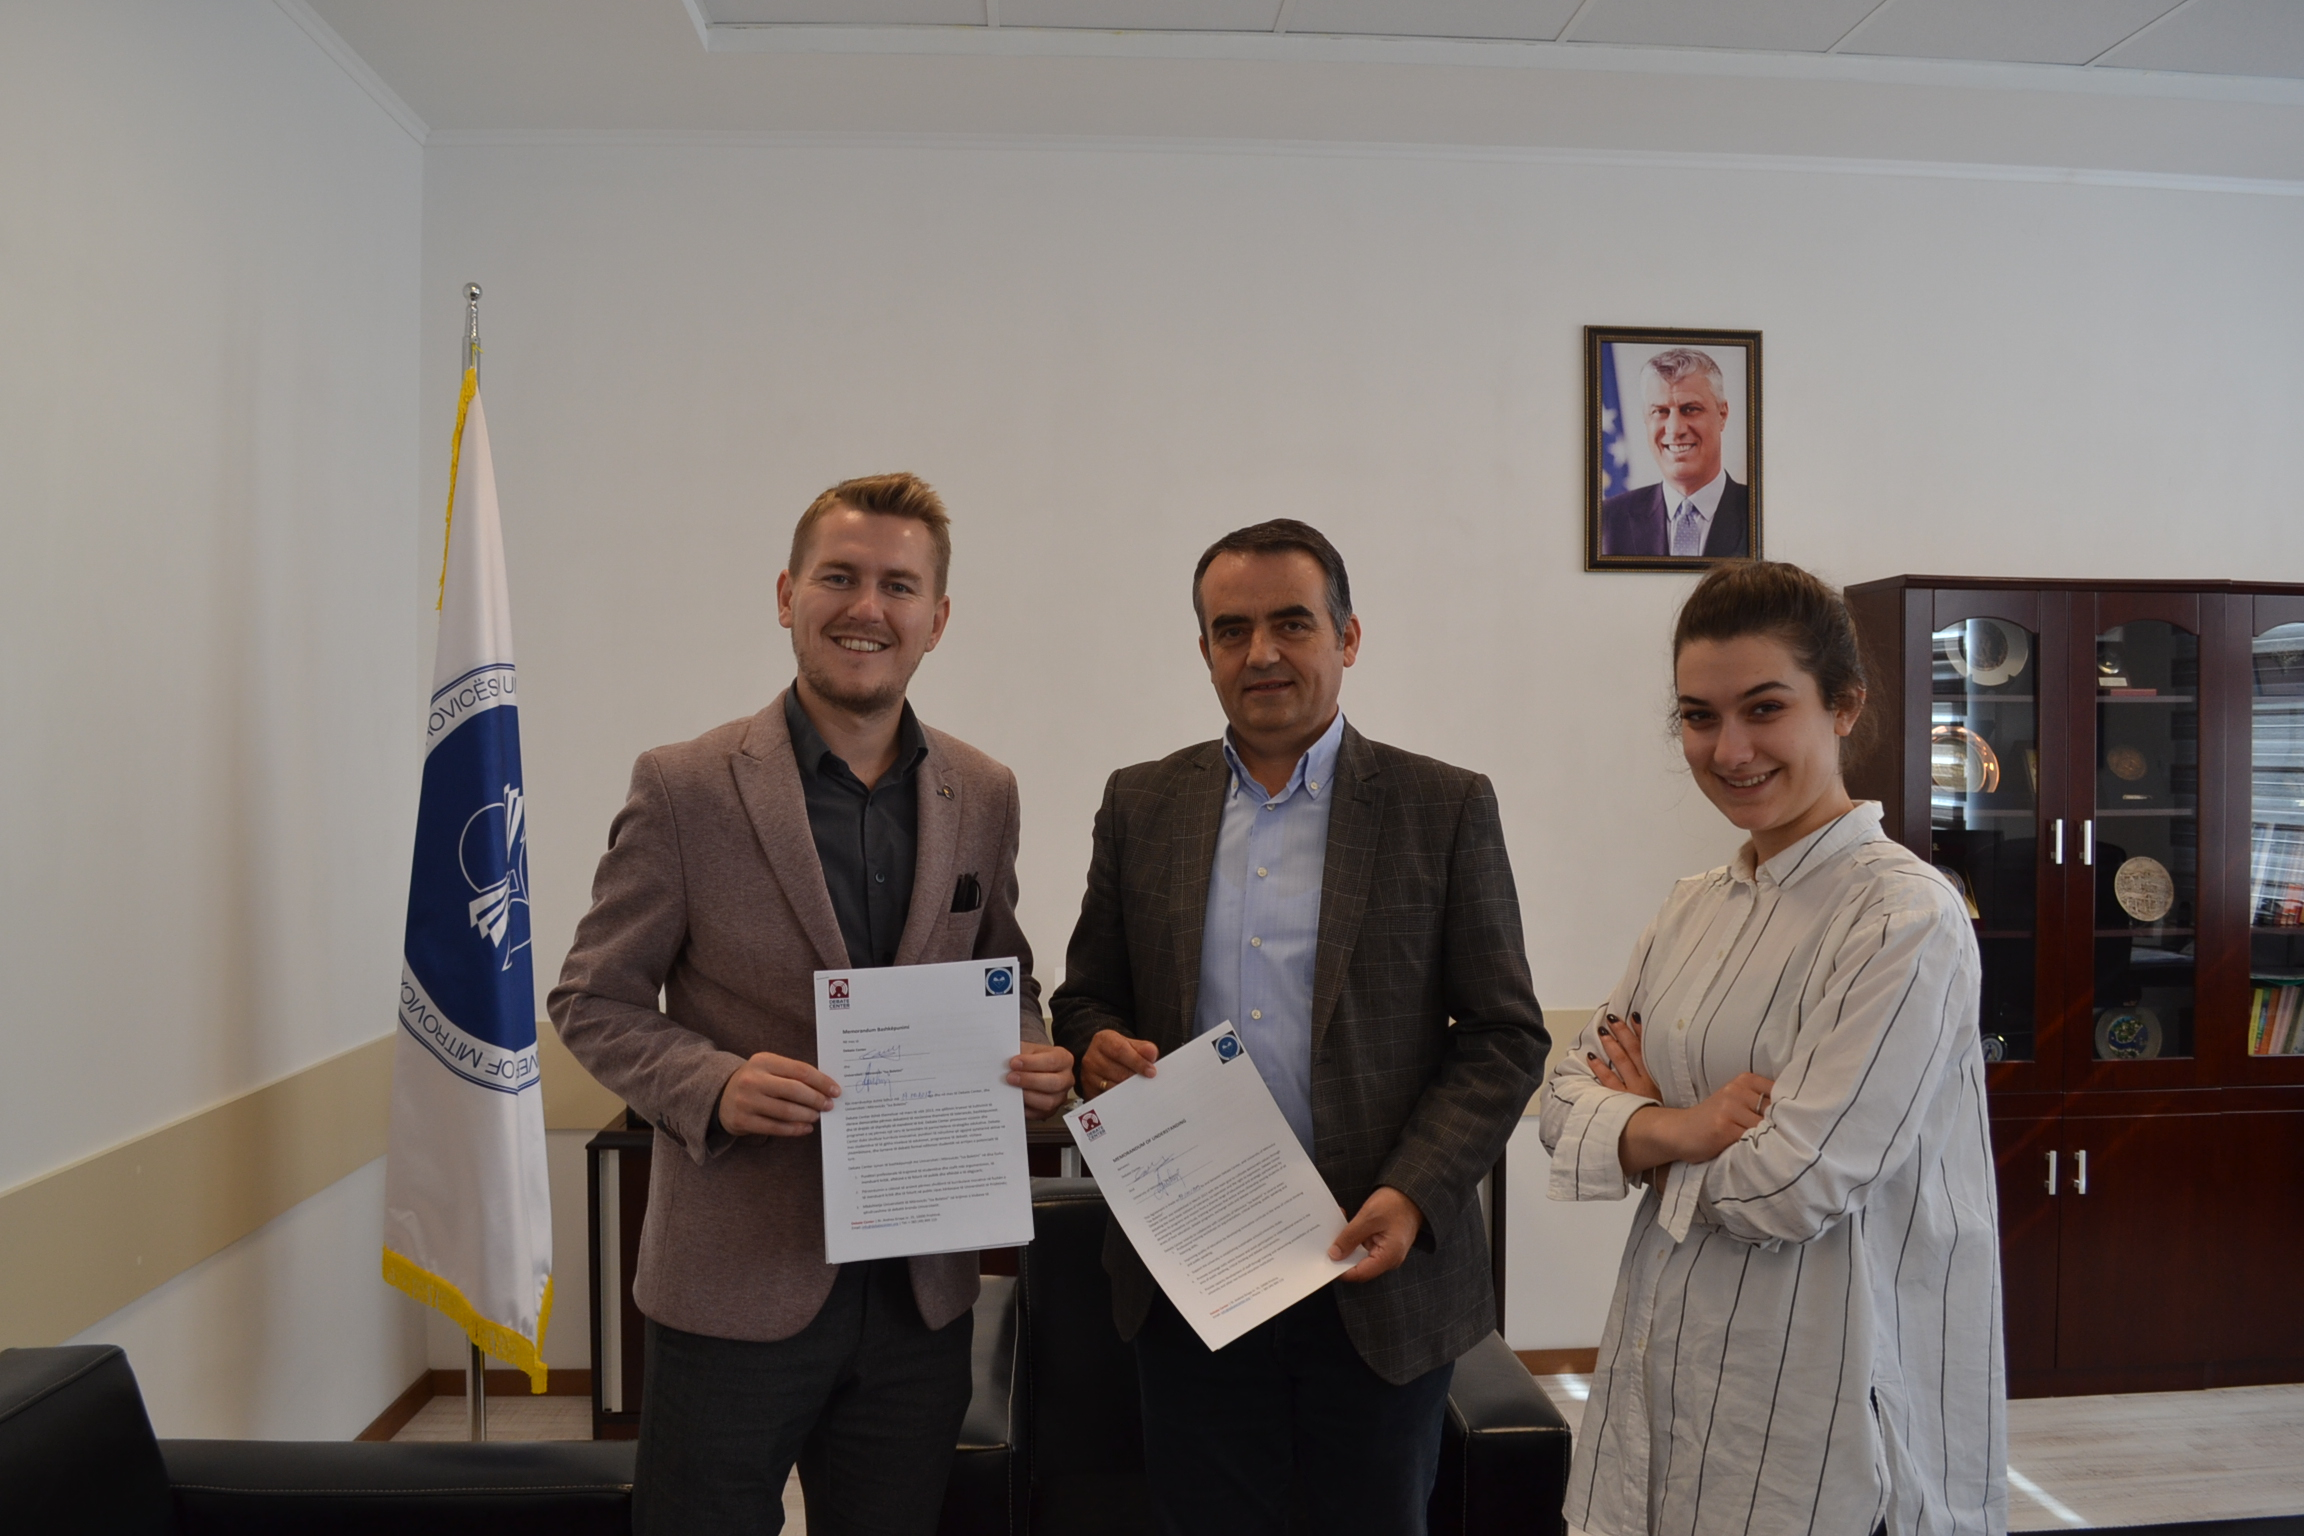 Collaboration With Debate Center To Develop Critical Thinking Within The University